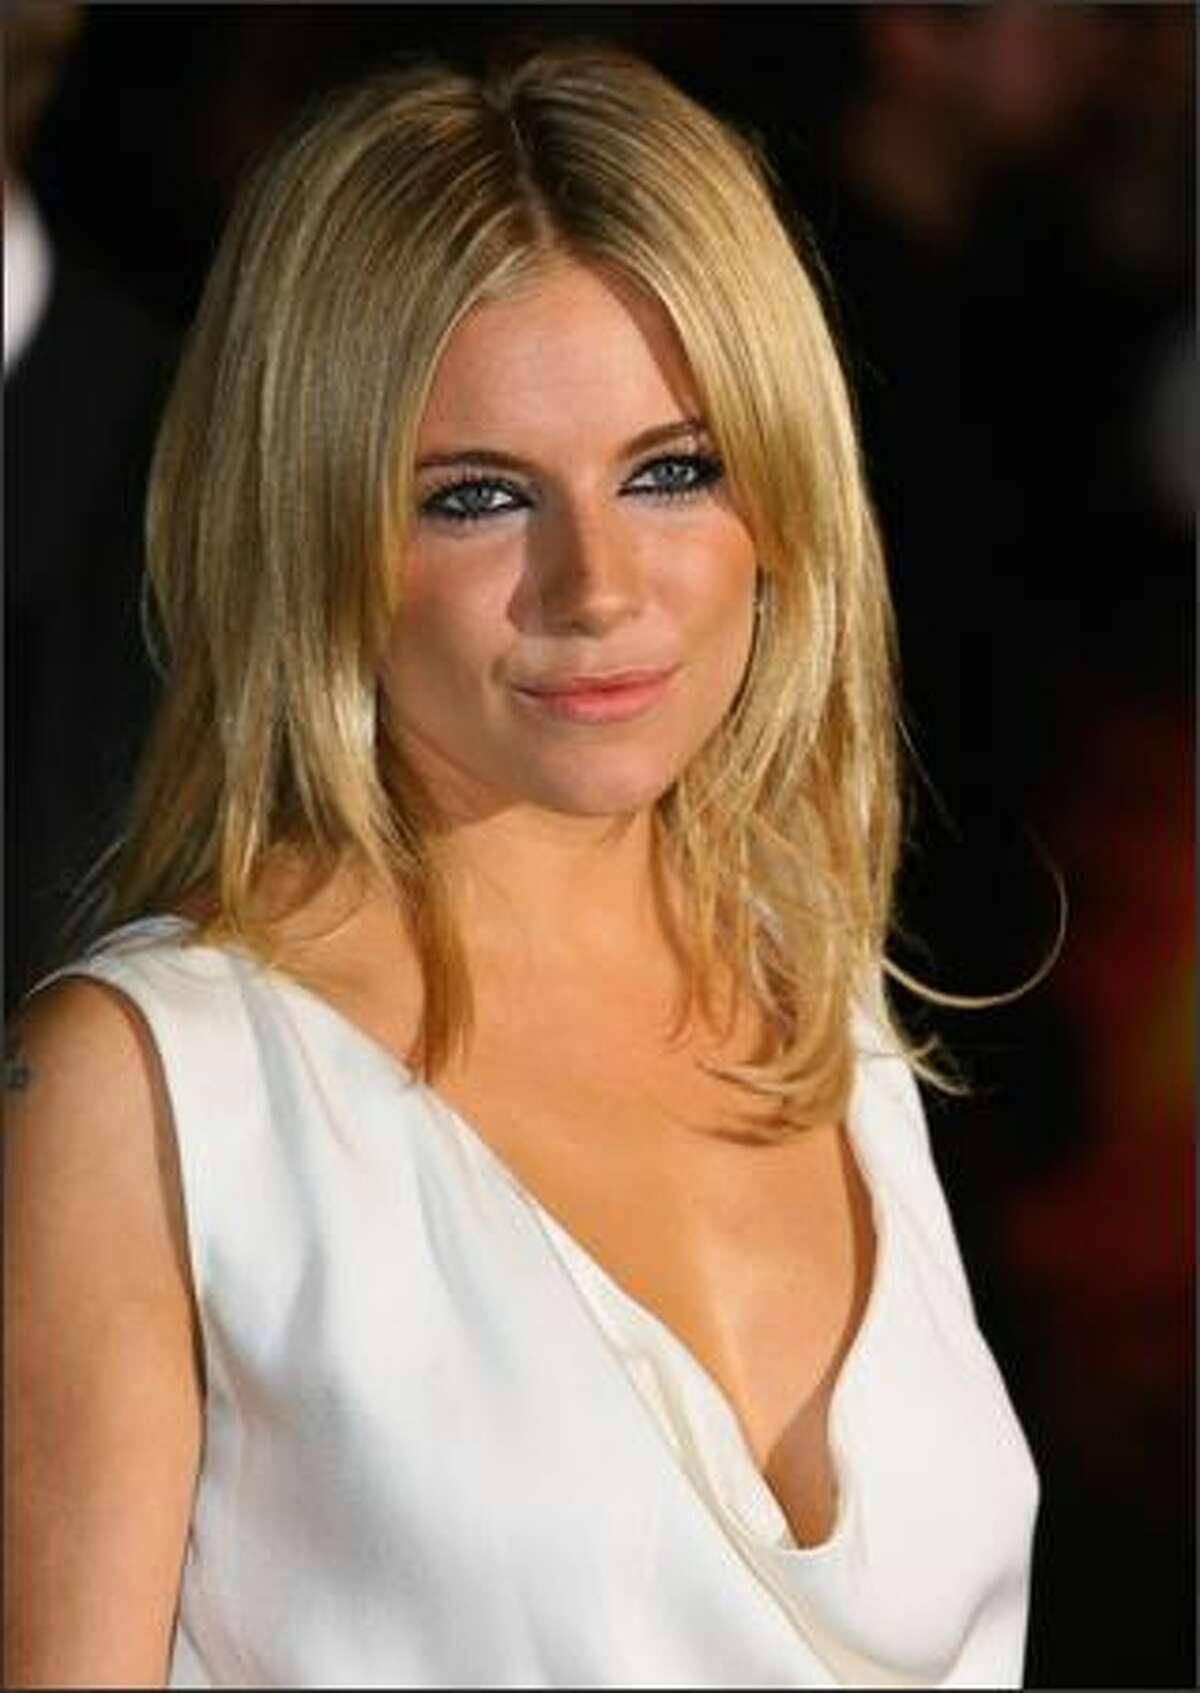 Sienna Miller attends the Stardust film premiere held at the Odeon Leicester Square on October 3, 2007 in London.